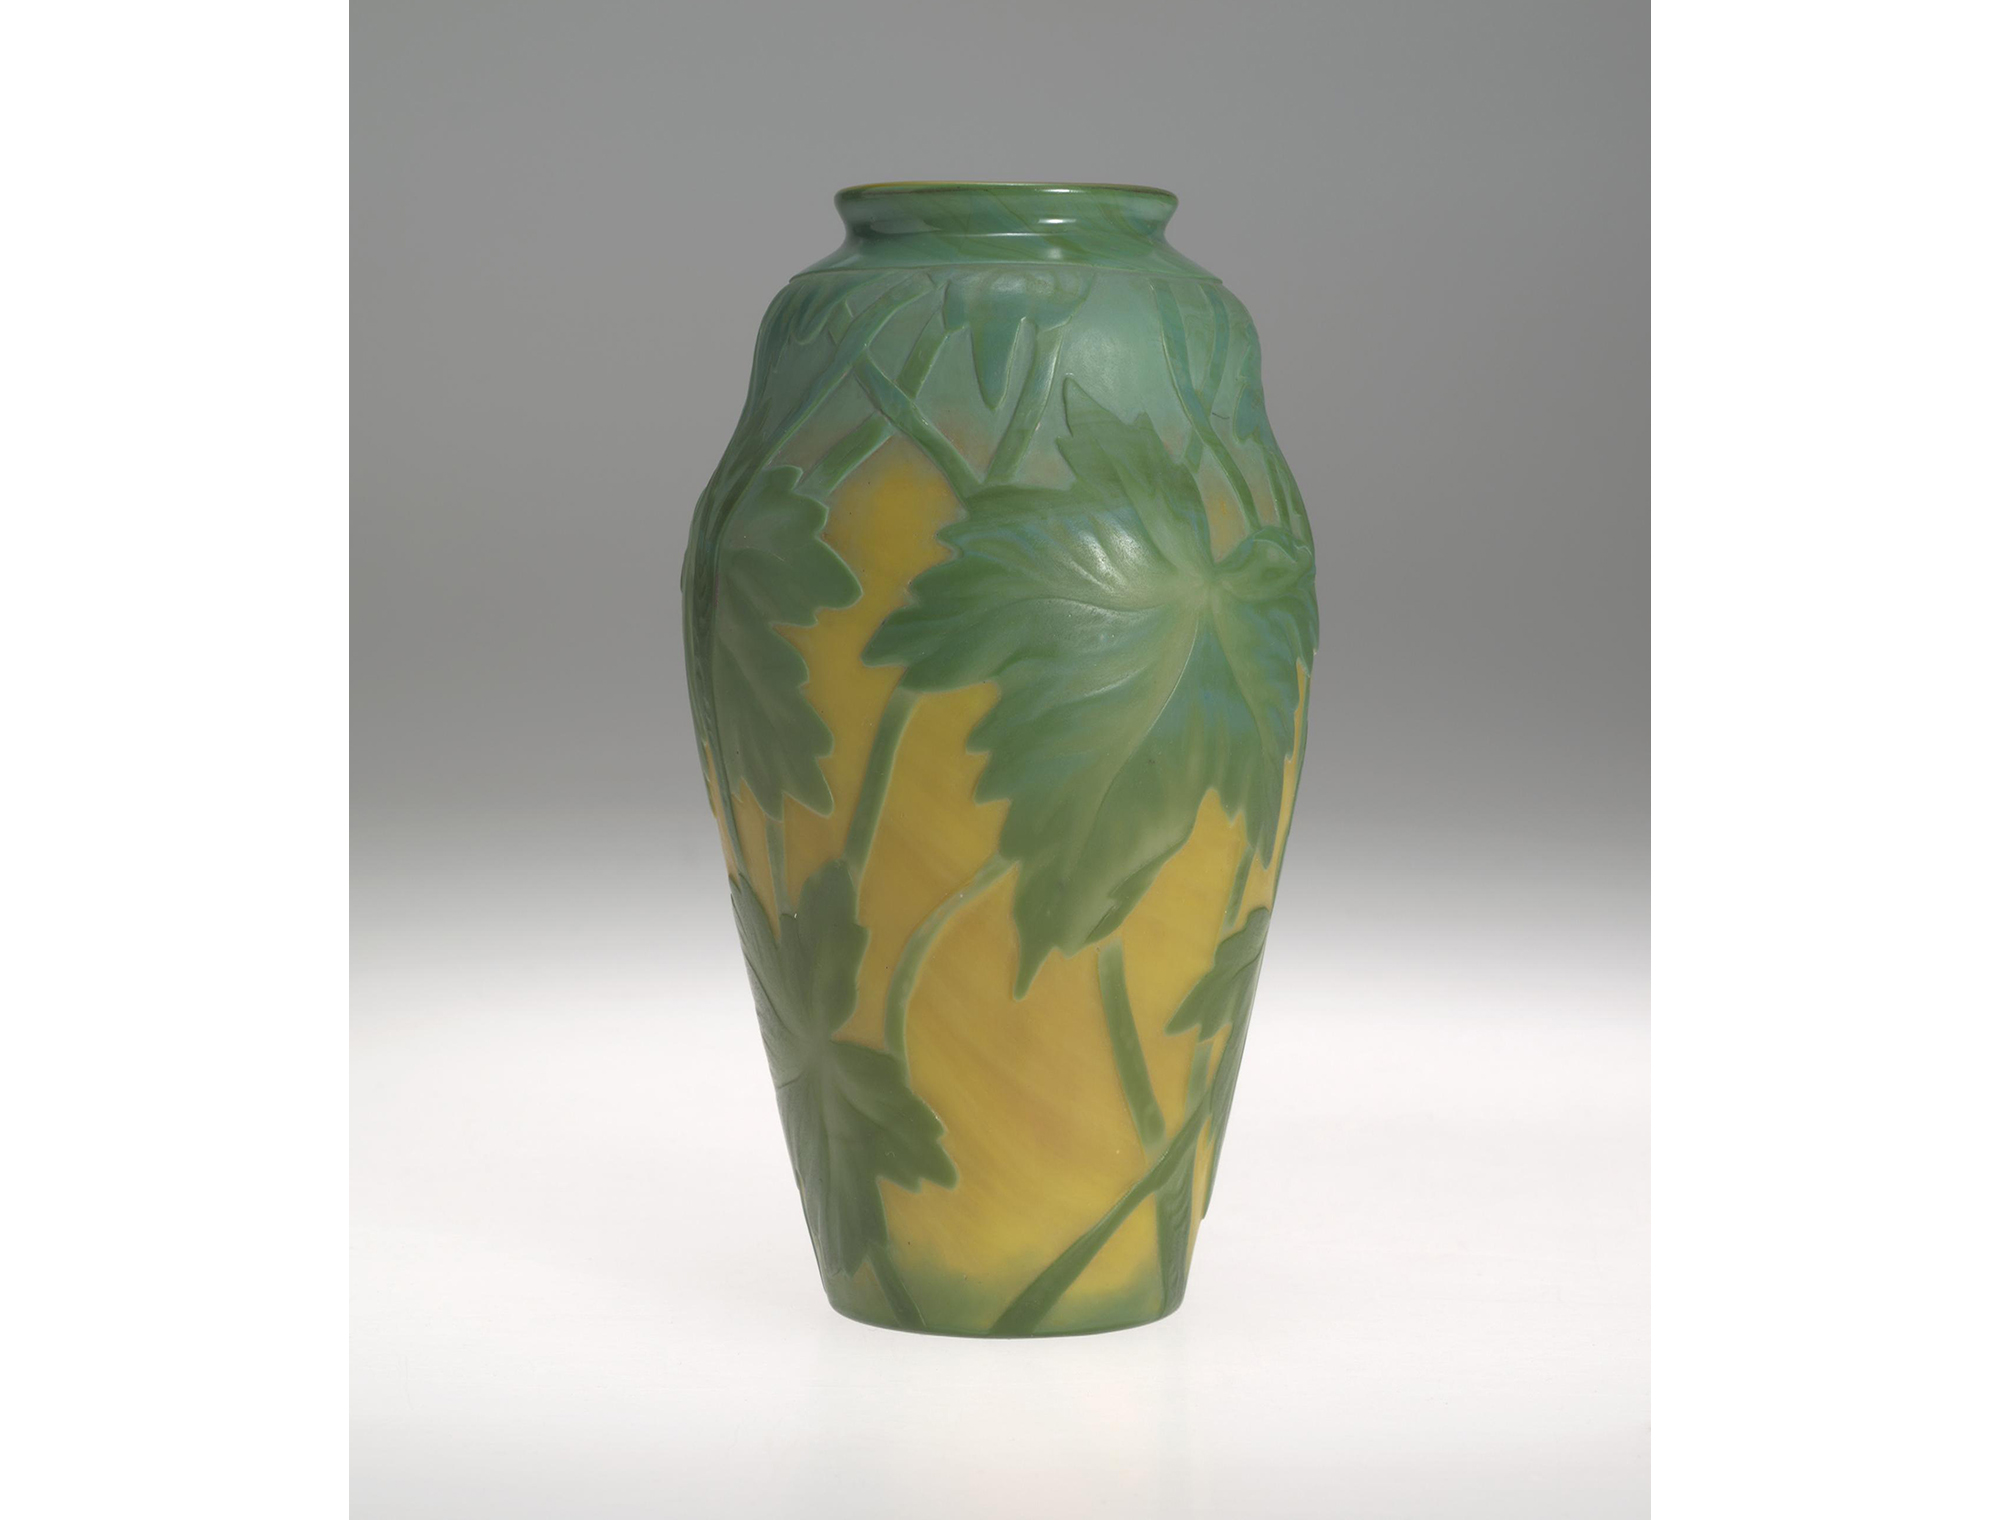 Vase, Green Overlay on Yellow Cameo. Herbert F. Johnson Museum of Art, Cornell University, 57.105.